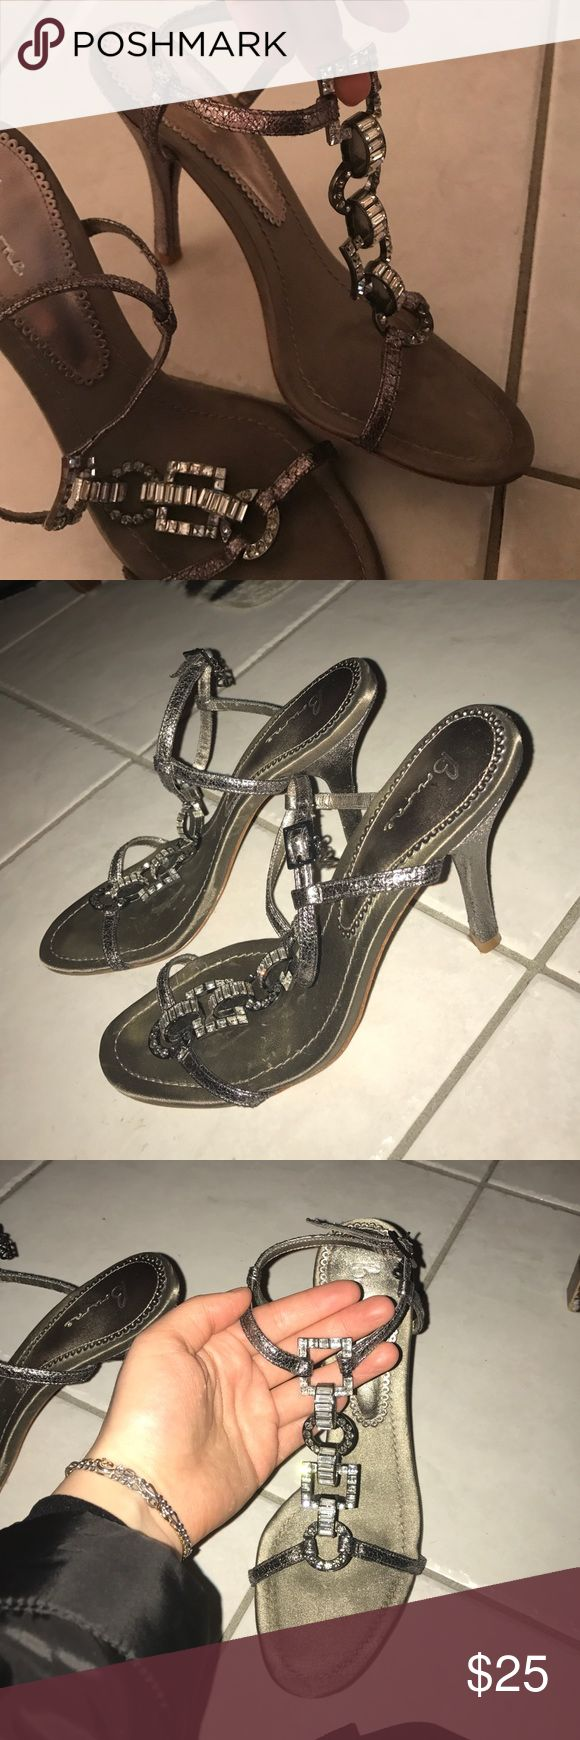 Bourne Pewter Steel and Crystal Heels Pewter Sandal Stilettos will Genuine Crystal Rhinestones Not missing a single one. Gorgeous worn dressy or casual. bourne Shoes